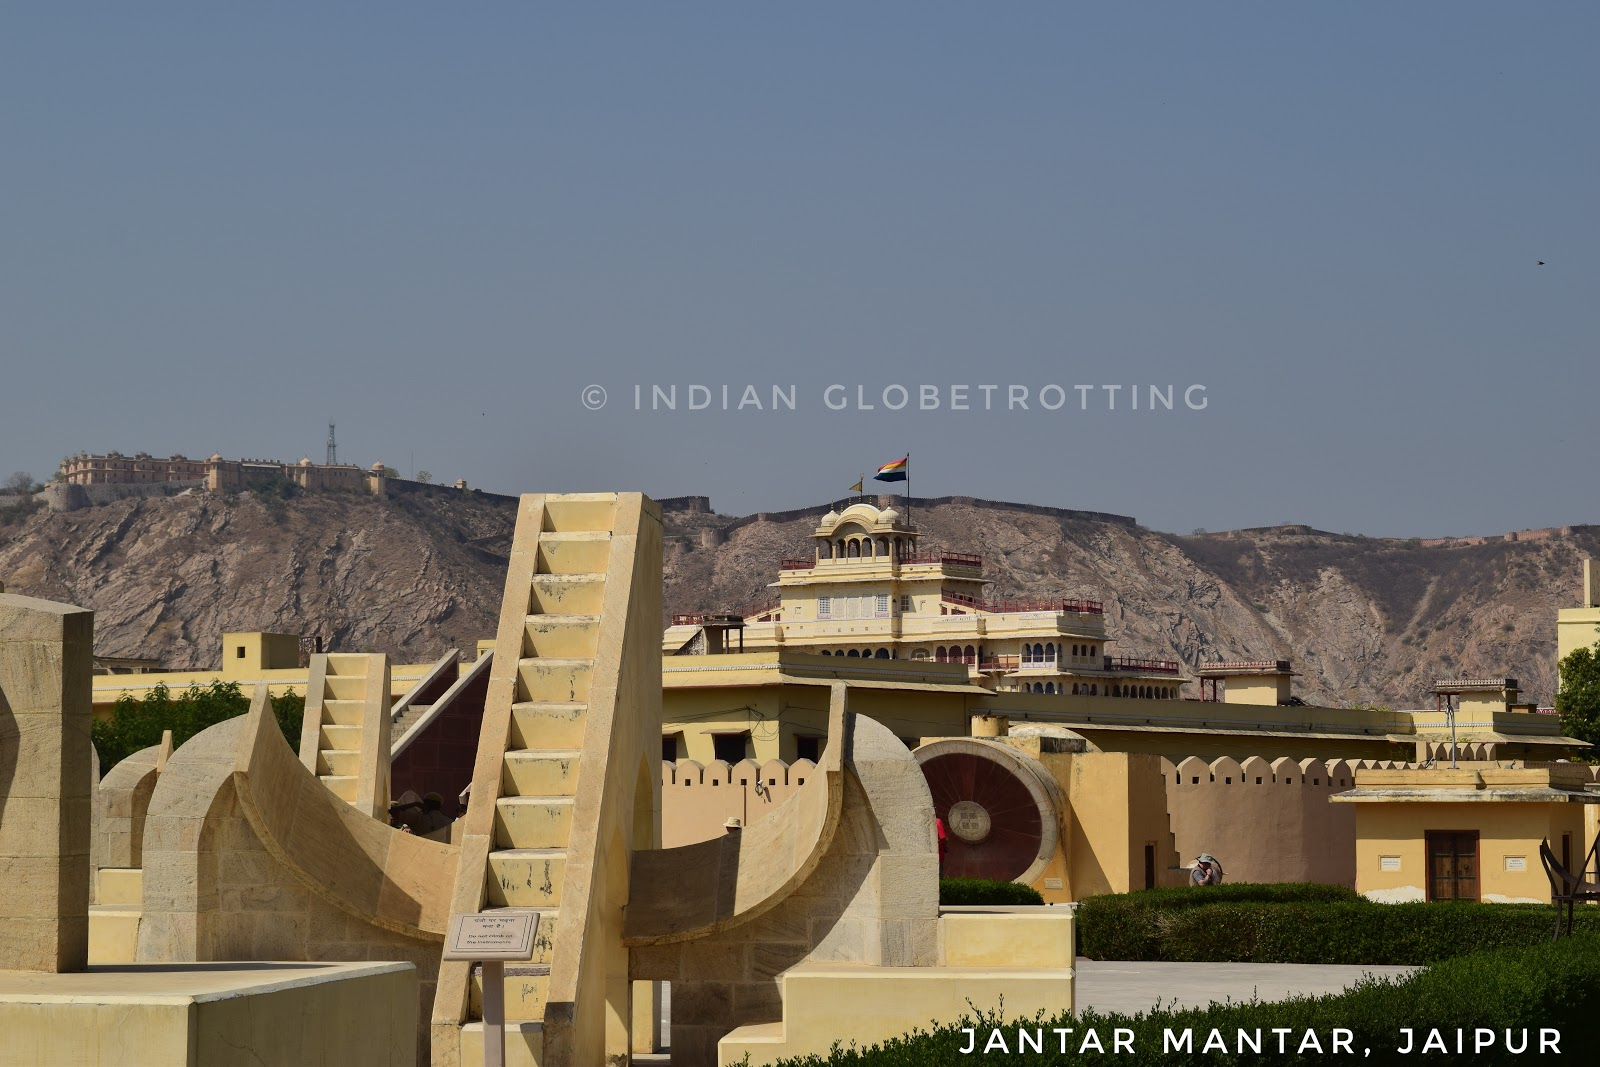 Jantar Mantar Observatory is a stone observatory in Jaipur Rajasthan